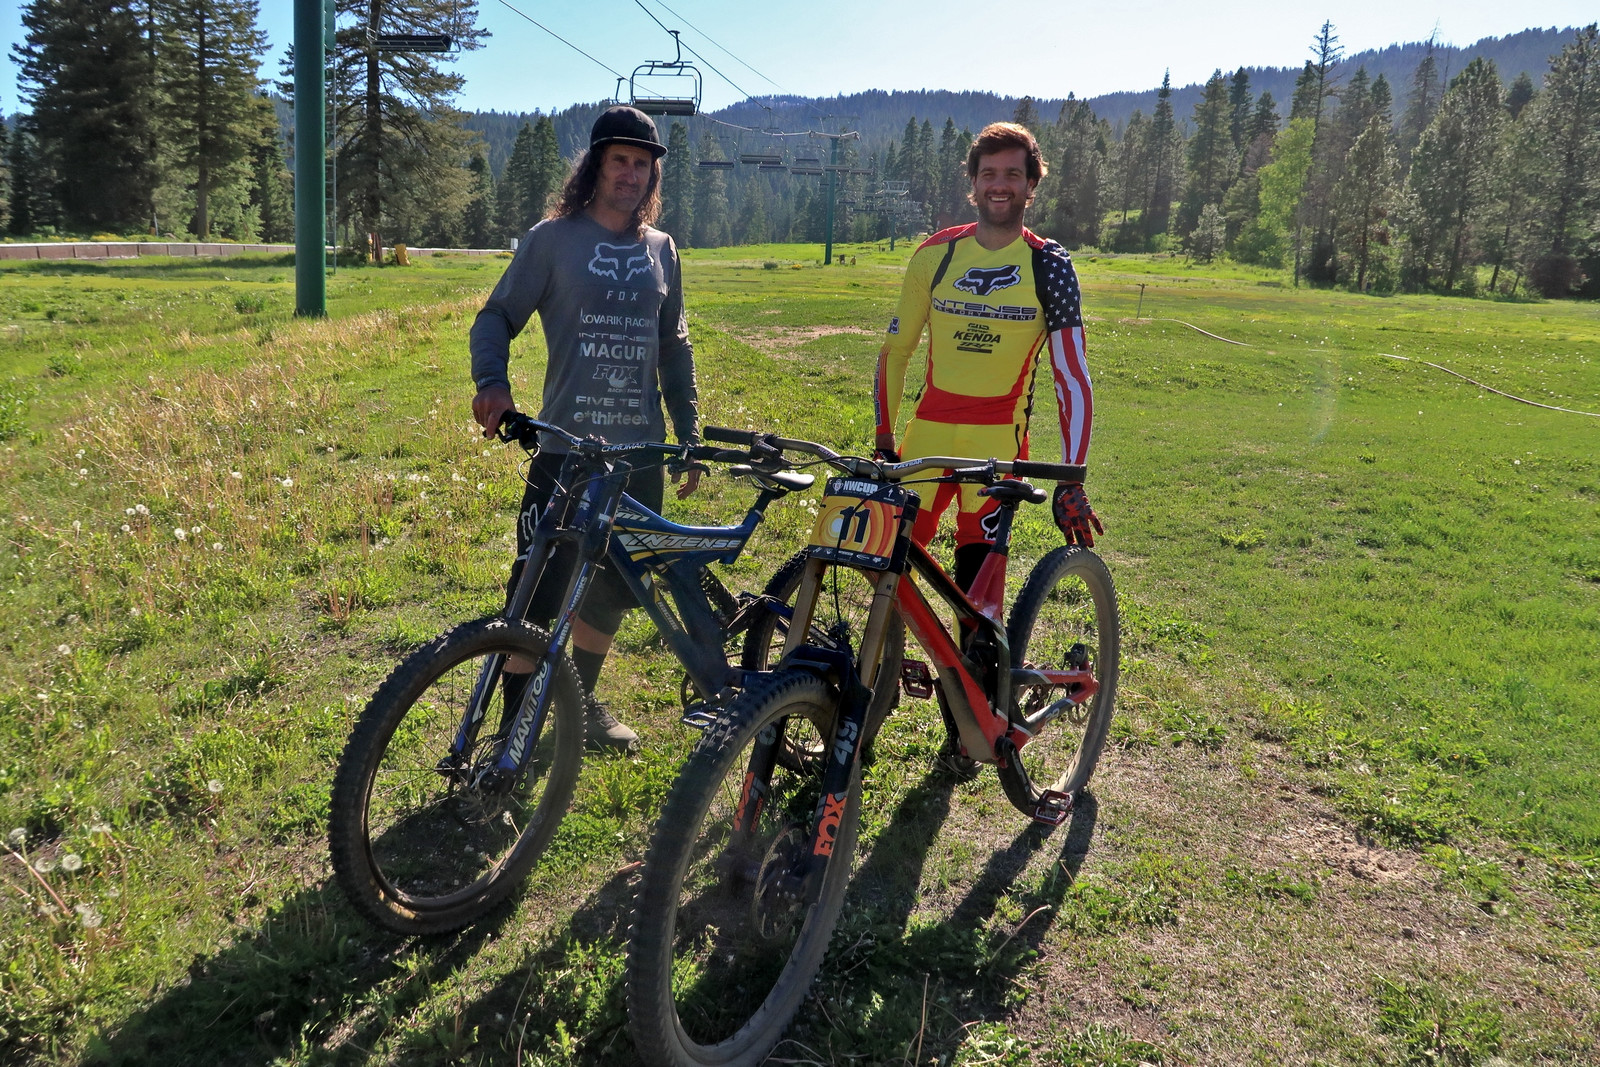 Chris Kovarik and Neko Mulally - PIT BITS - Tamarack Pro GRT / NW Cup - Mountain Biking Pictures - Vital MTB